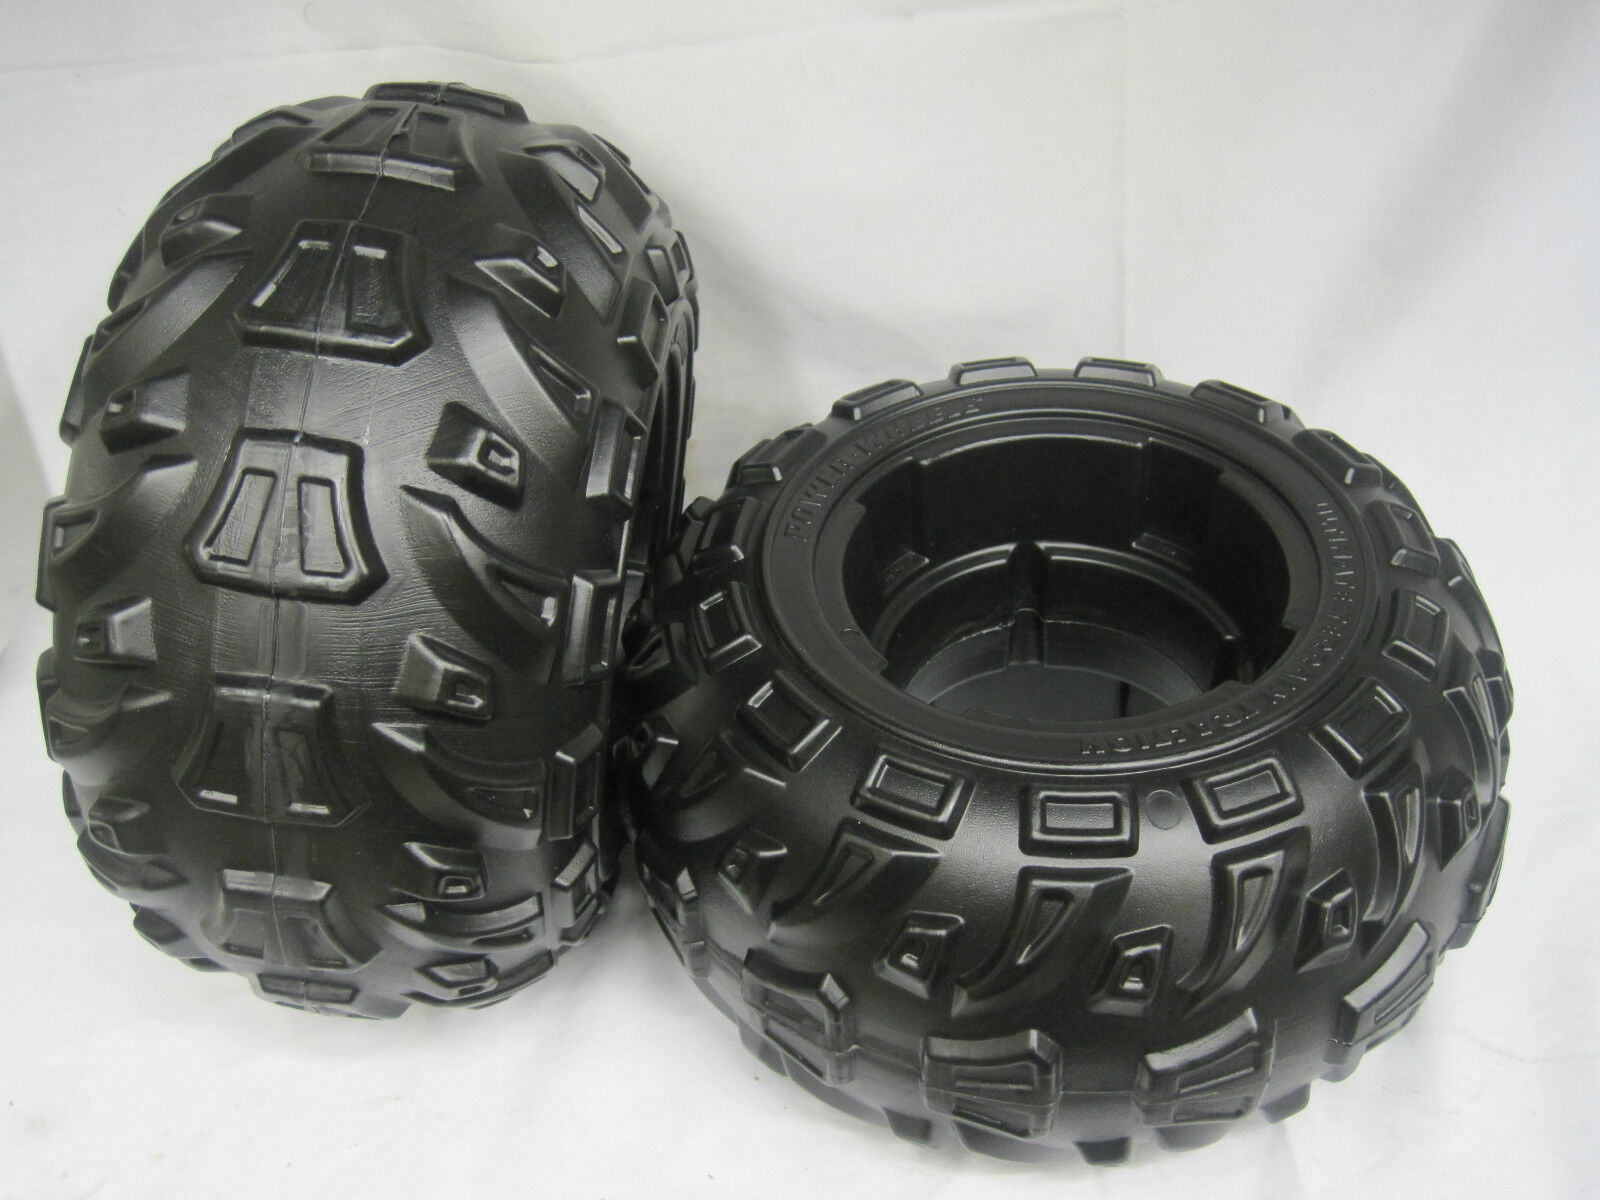 Power Wheels Kawasaki Brute Force Replacement Front Tire J5248-2369